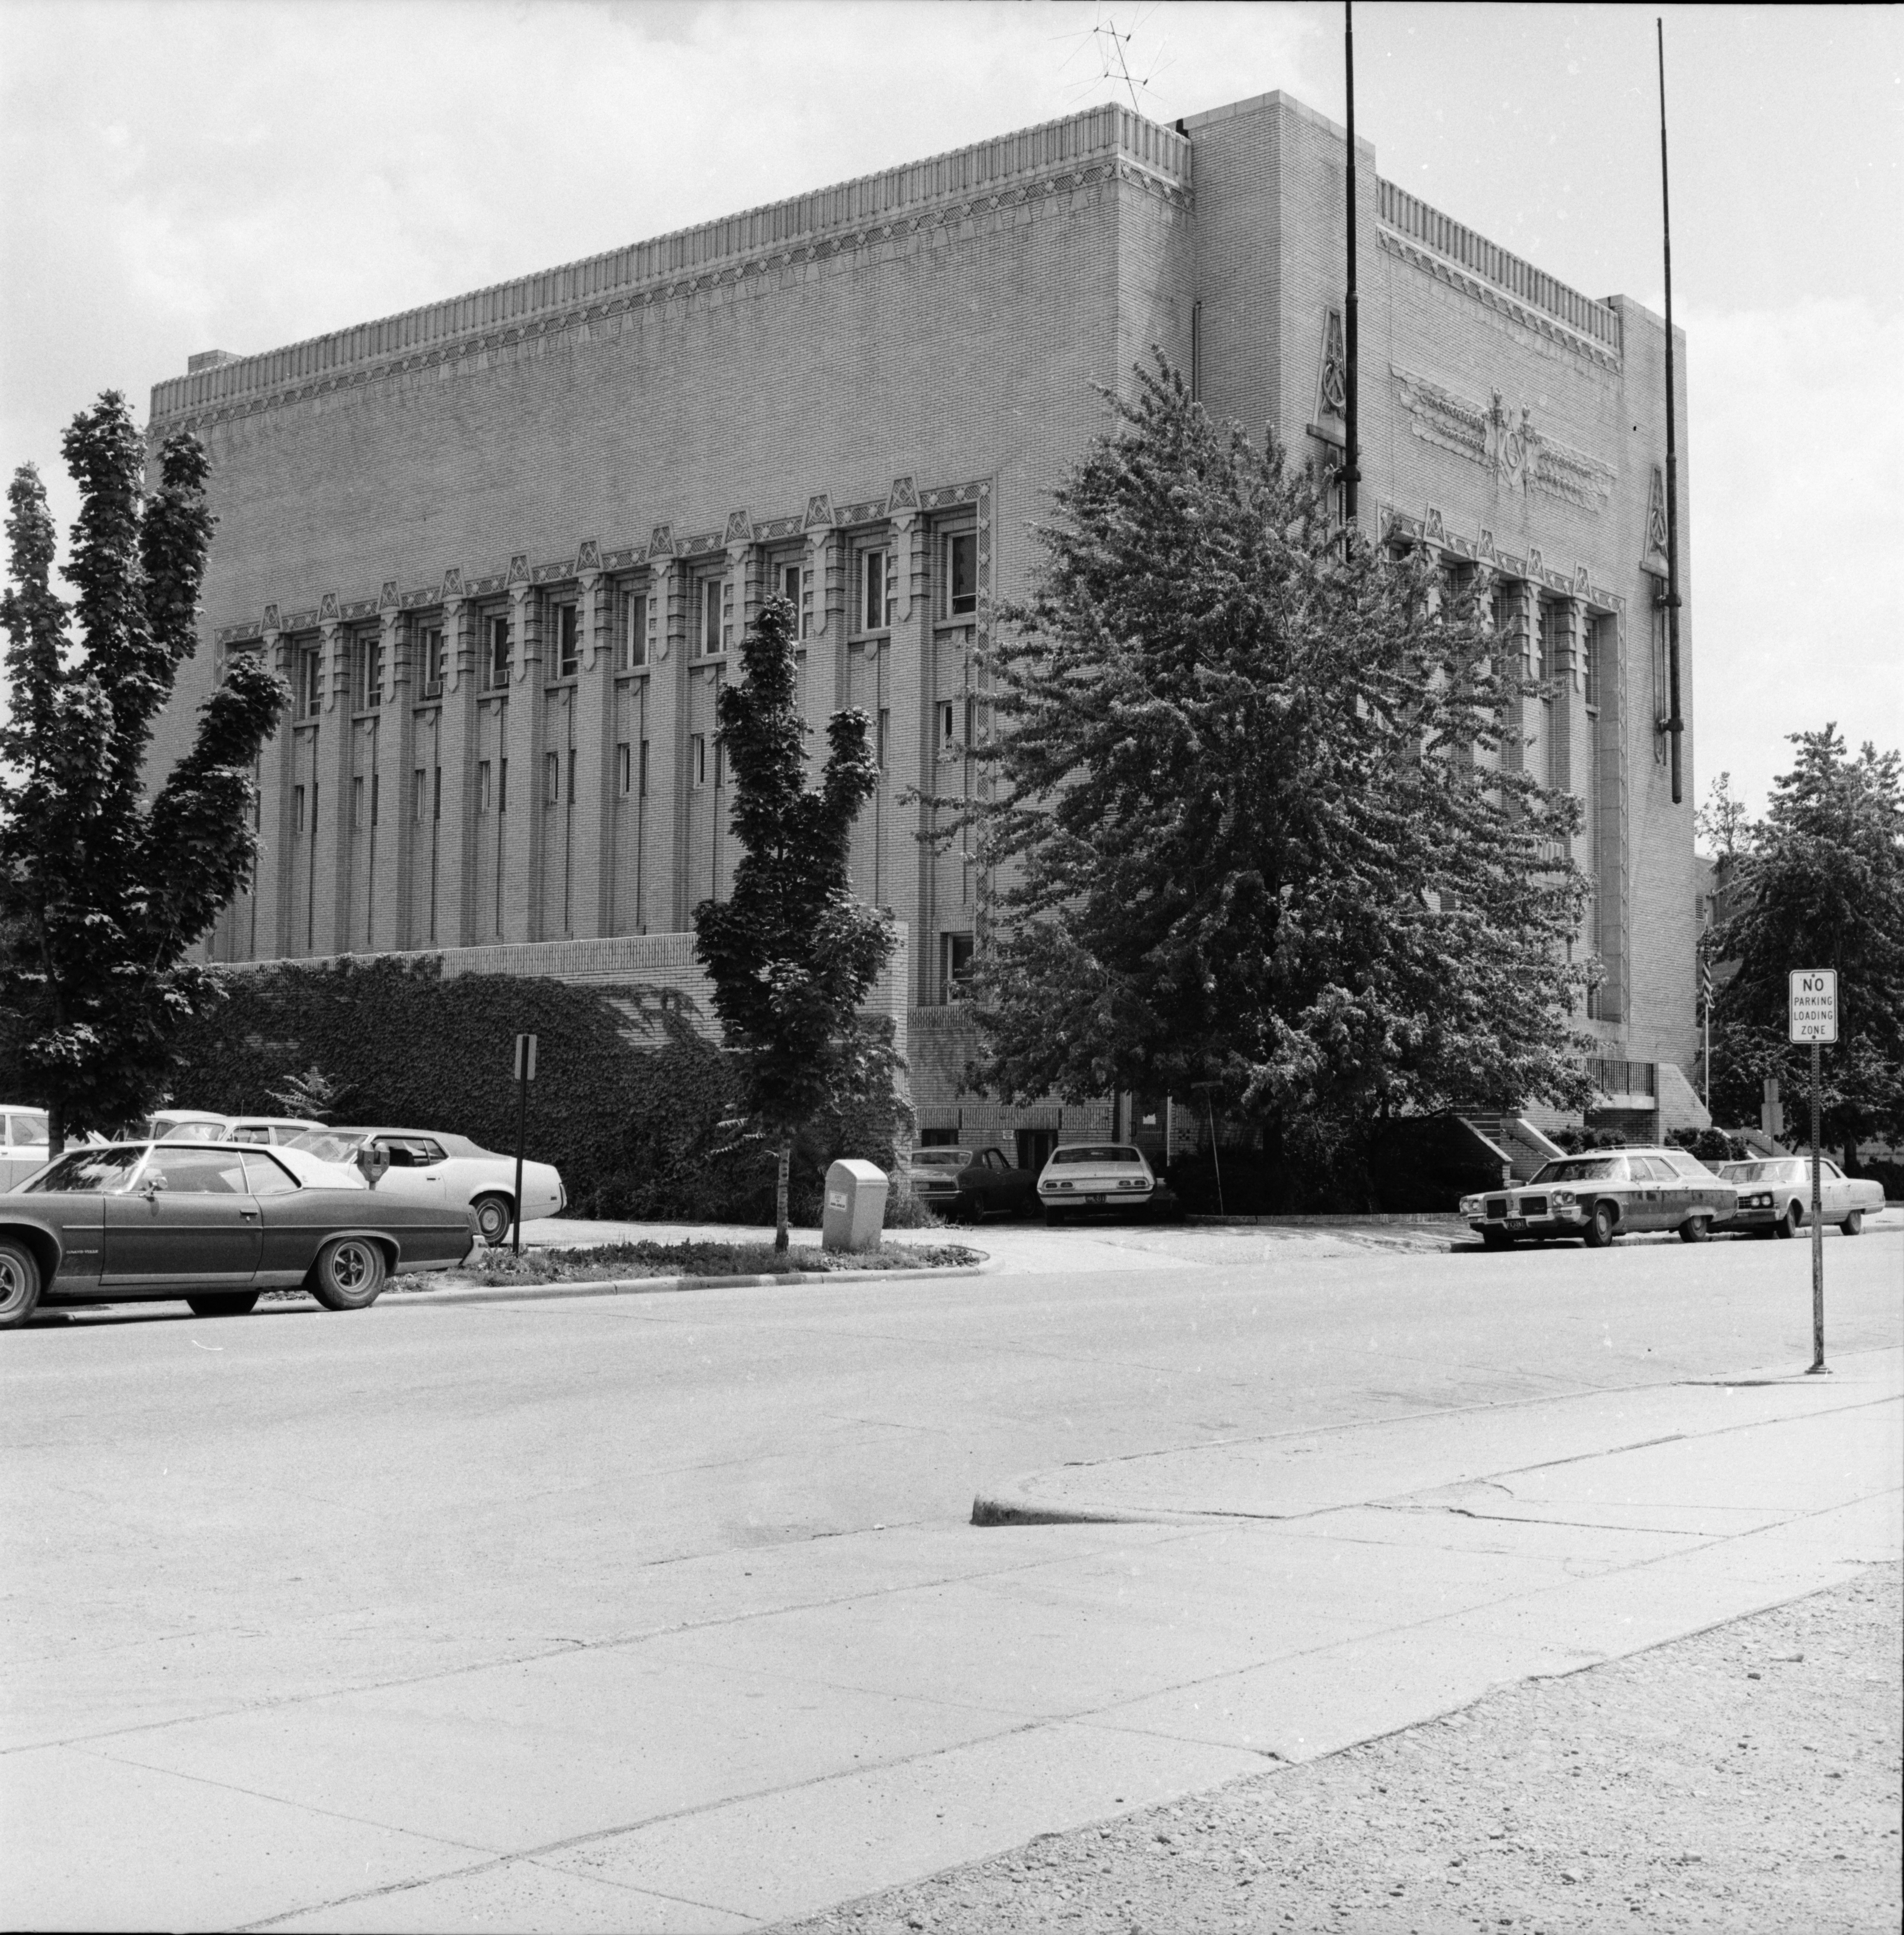 Exterior of the Masonic Temple, July 1973 image